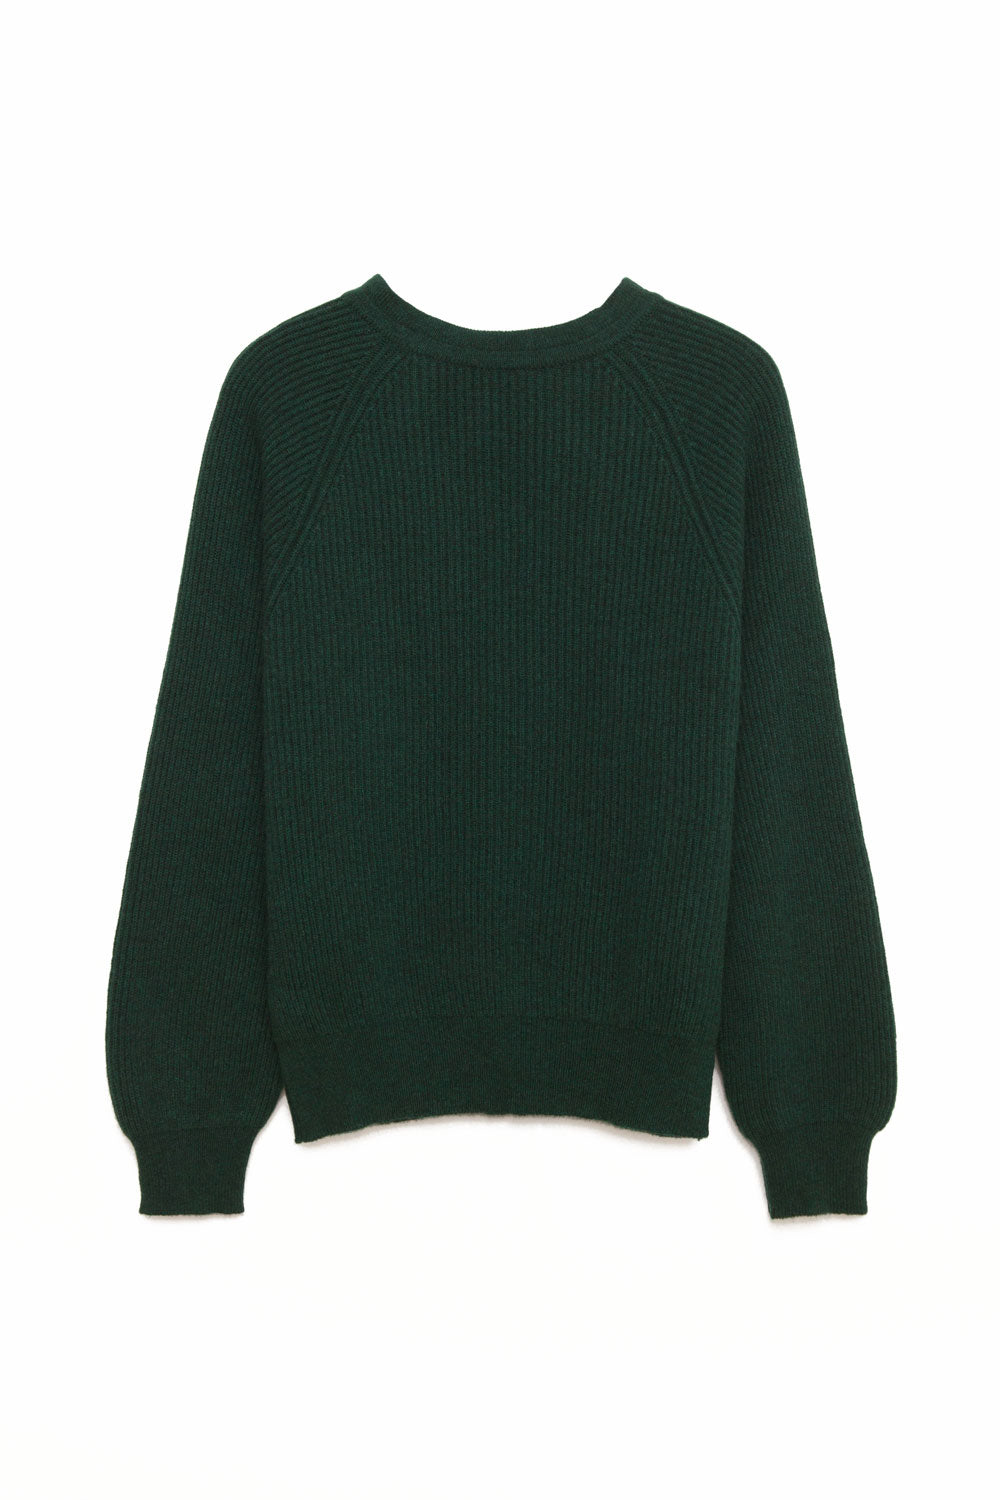 Evergreen cashmere mock neck pullover sweater with tie back silhouette